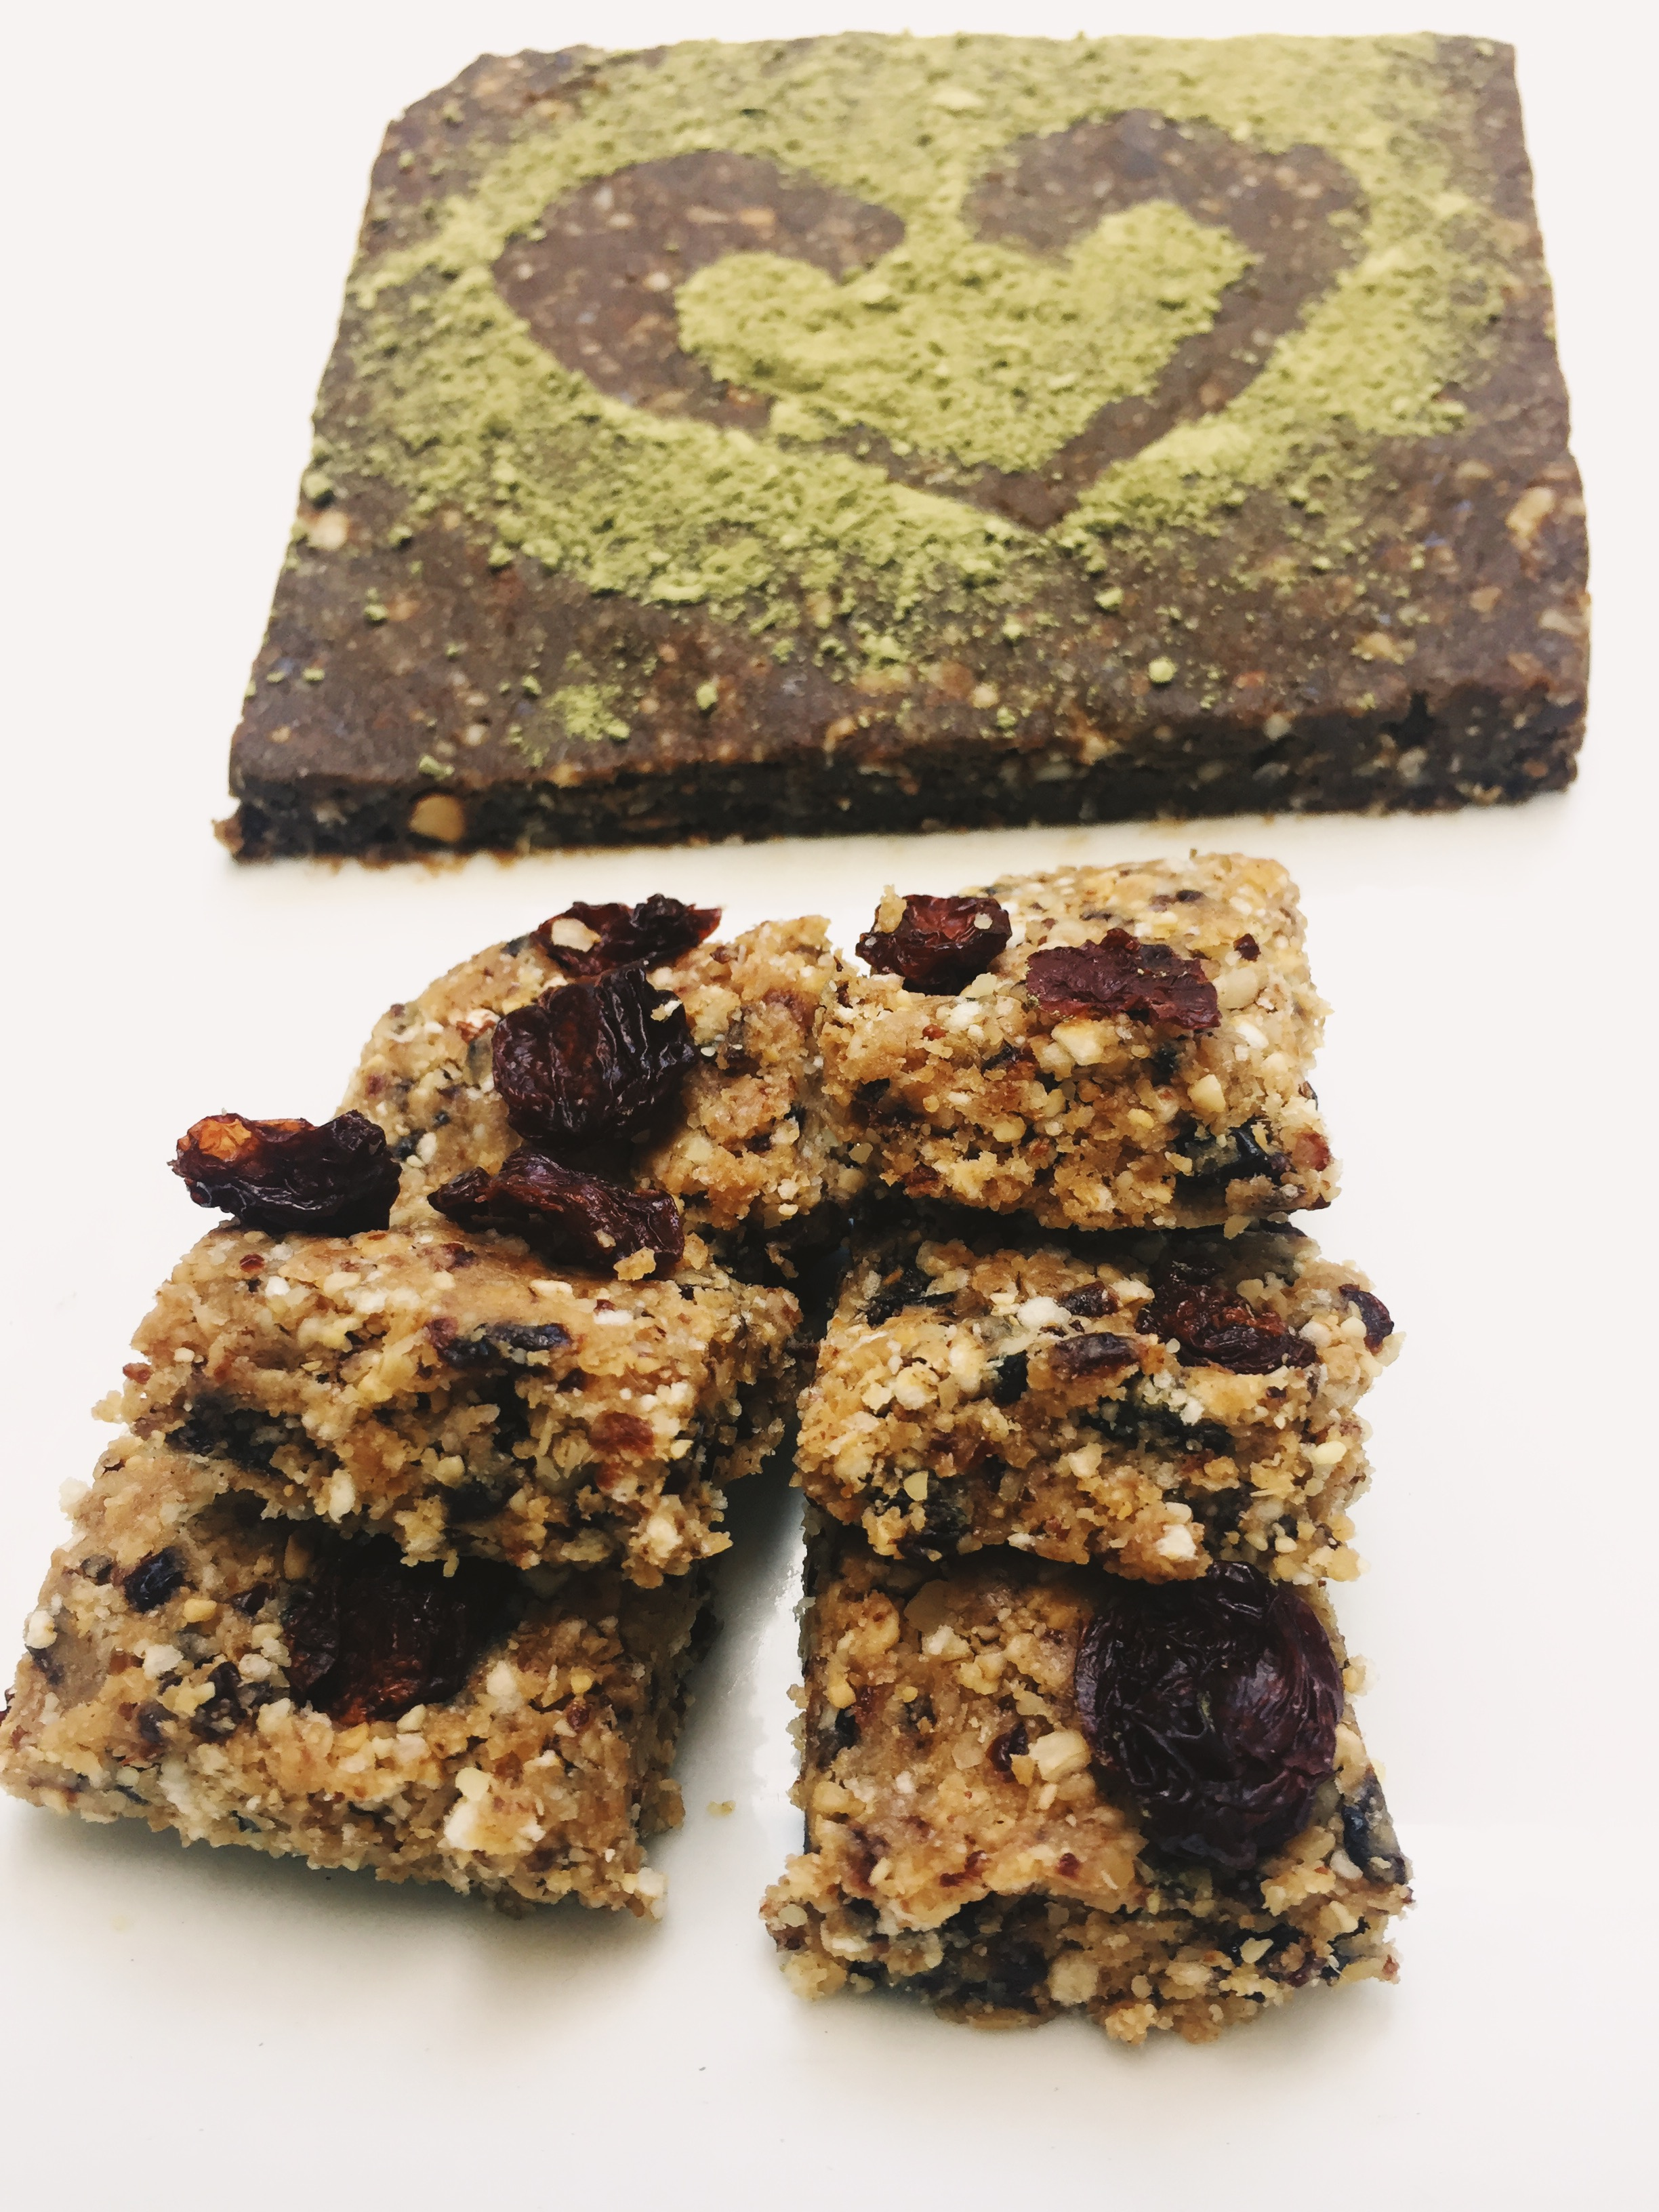 Cherry Oat Energy Bites/ In the background is my  Matcha Chocolate Date Bar